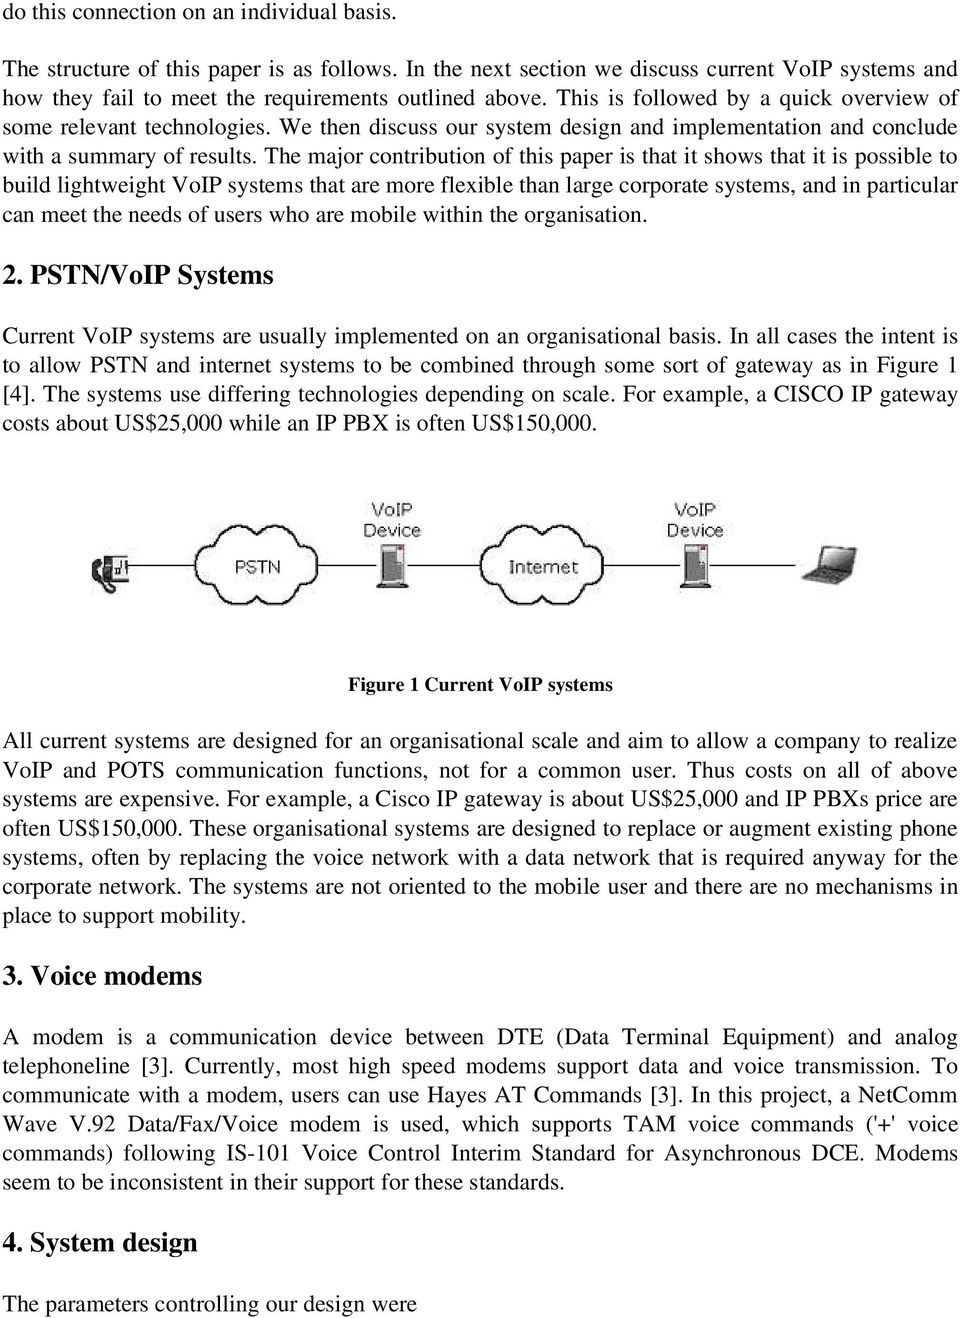 The major contribution of this paper is that it shows that it is possible to build lightweight VoIP systems that are more flexible than large corporate systems, and in particular can meet the needs